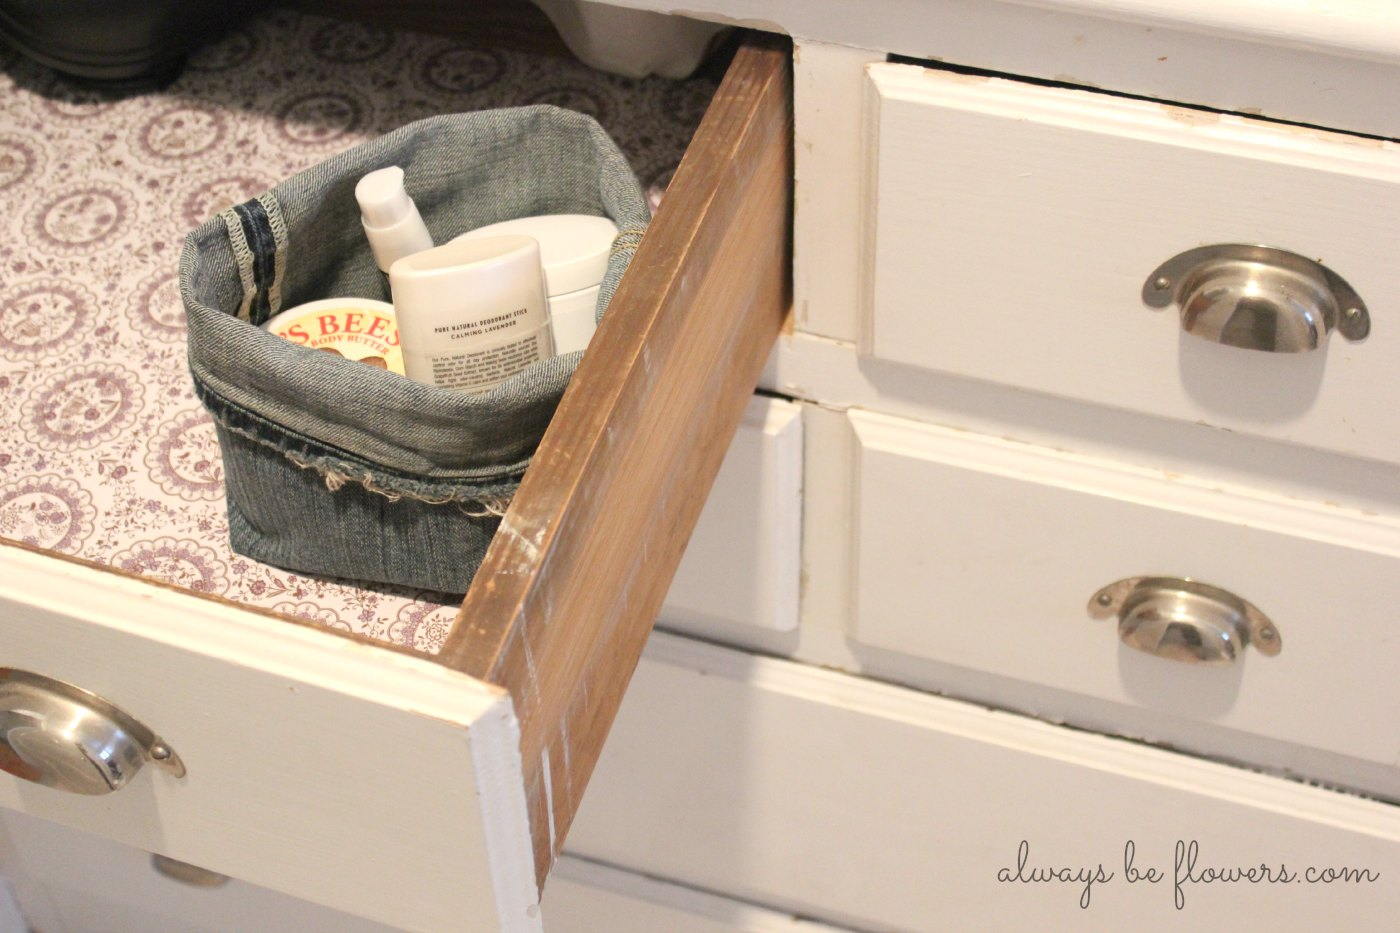 I think this style of fabric basket will make a good drawer organizer.